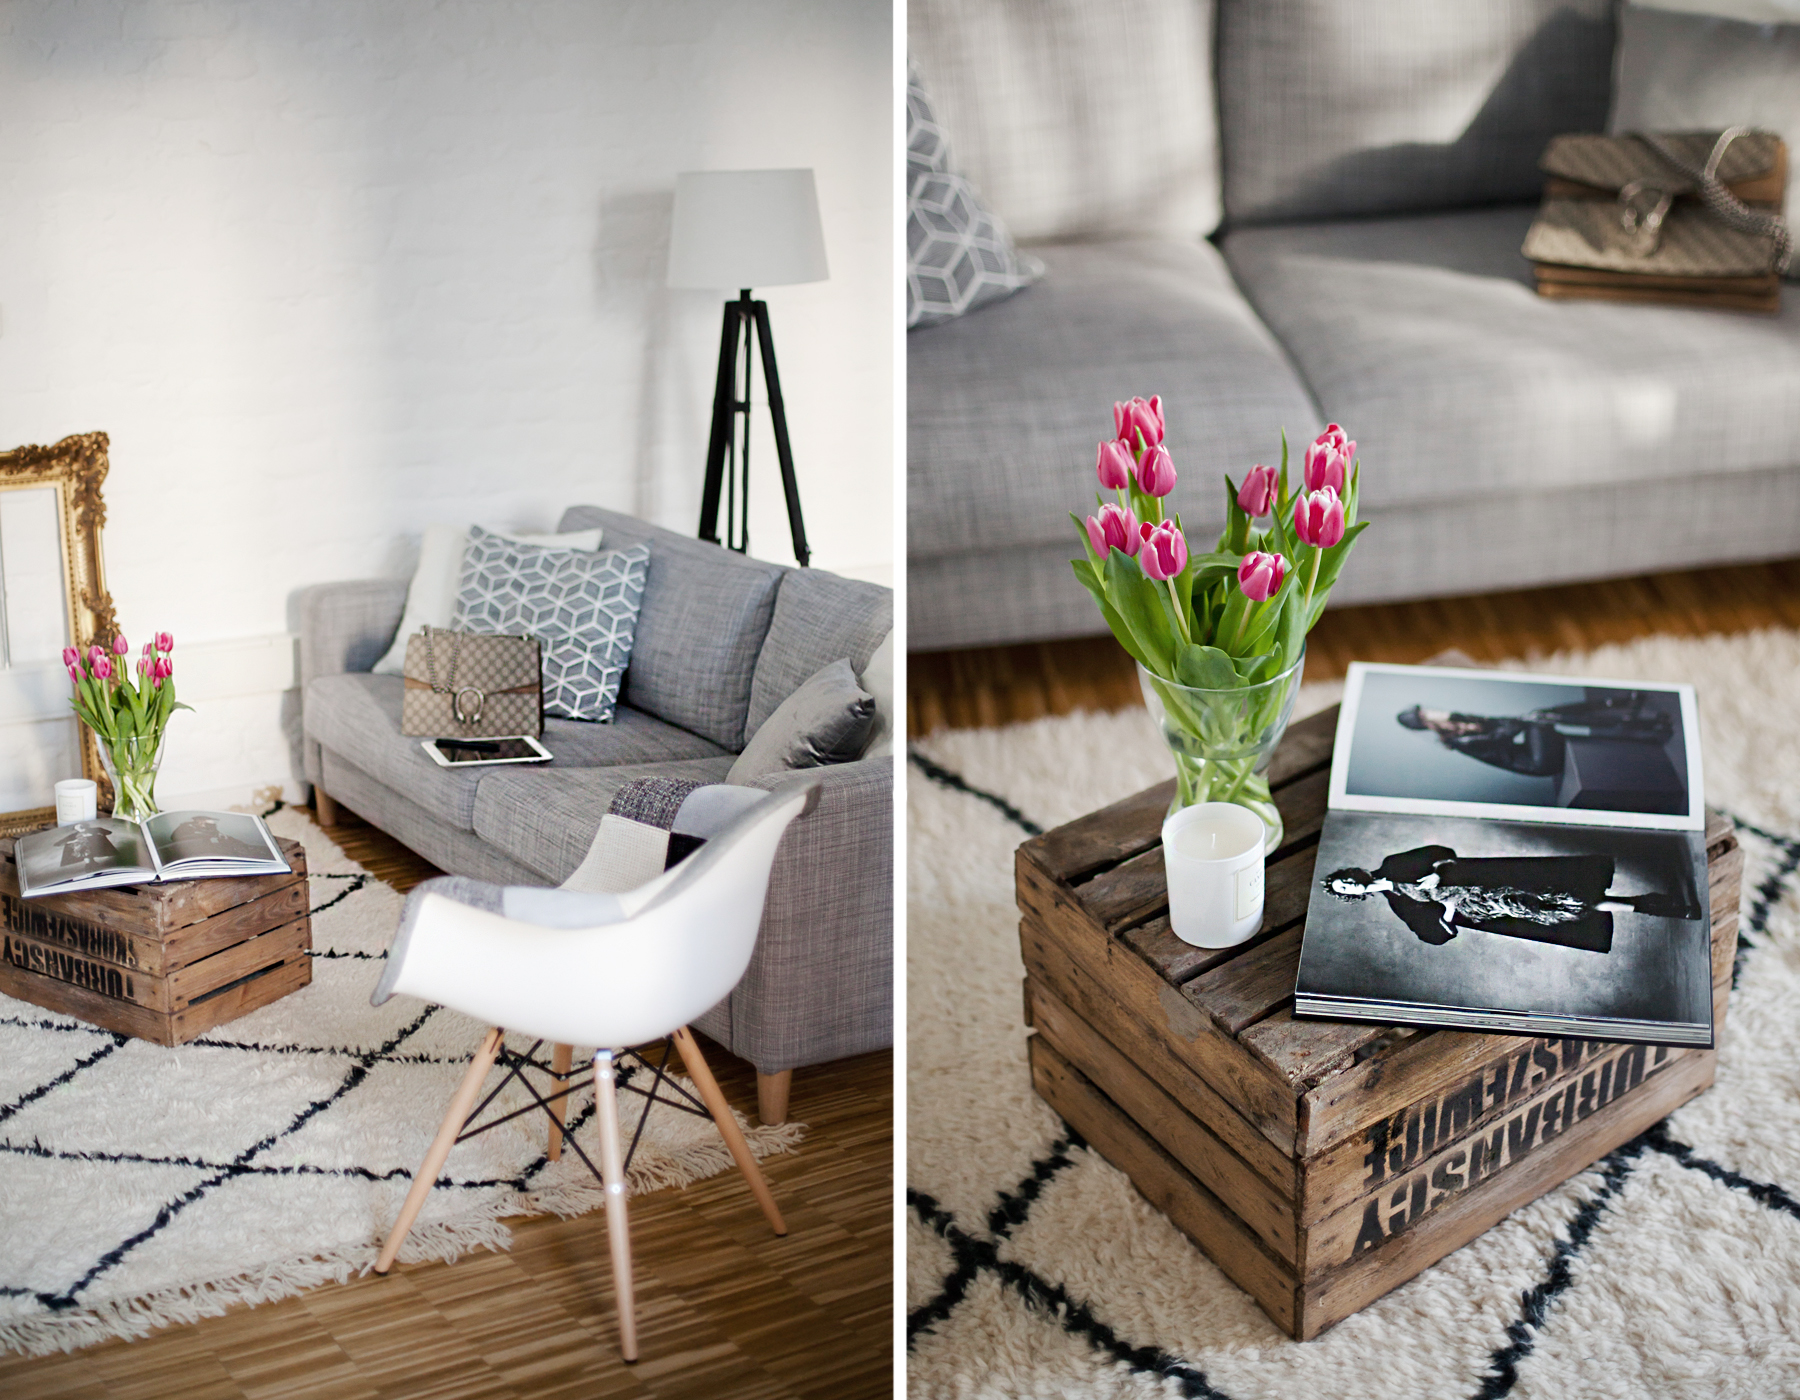 interior home living decor inspiration interiordesign eames voga vitra ikea wine box tulips modern life luxury homedecor beni ourain rug moroccan homefashion personal life blogger interiorblogger cats & dogs blog ricarda schernus 1